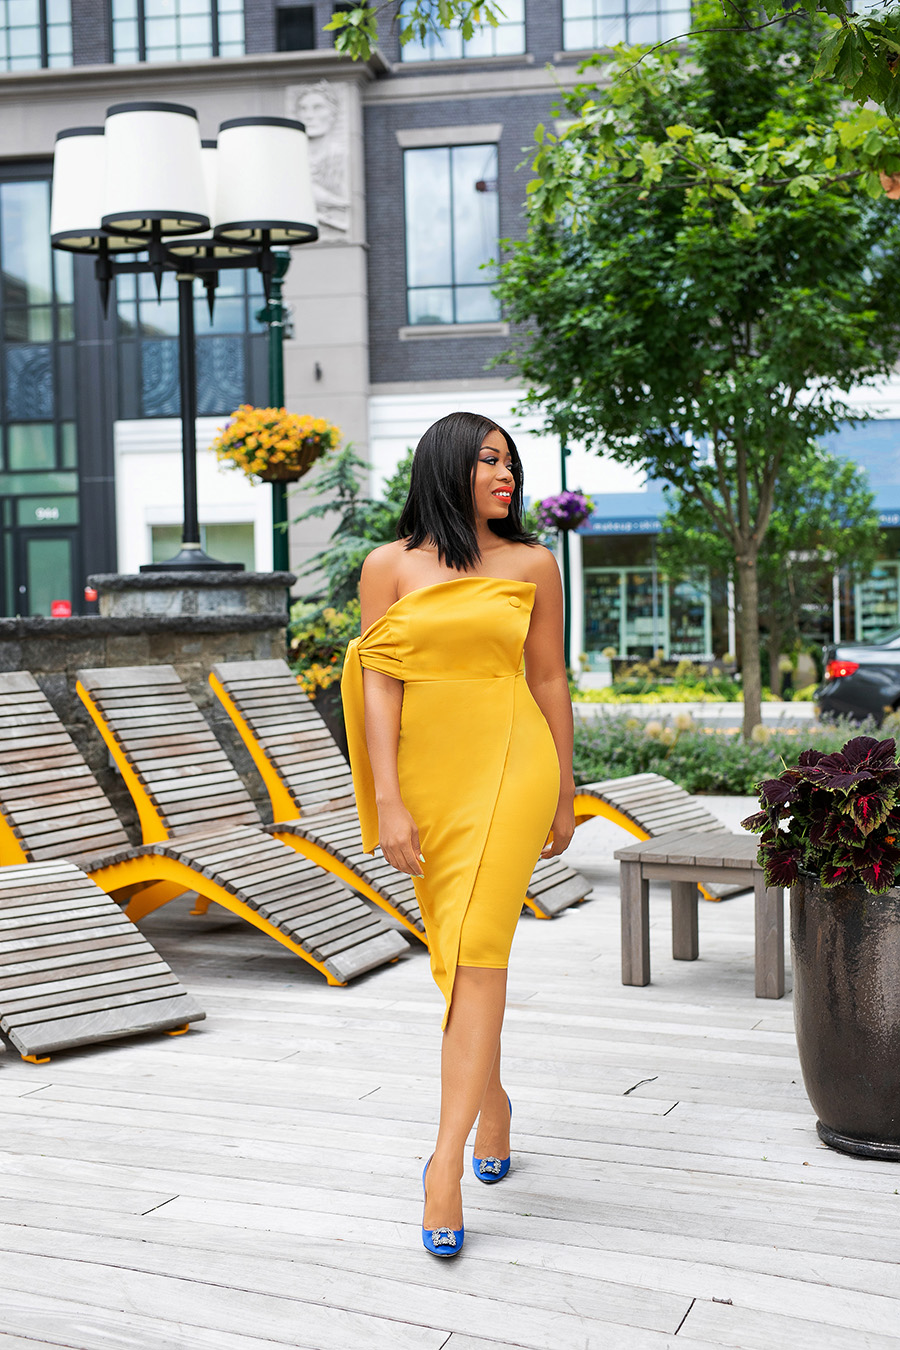 Yellow summer off shoulder dress and blue pumps in the city